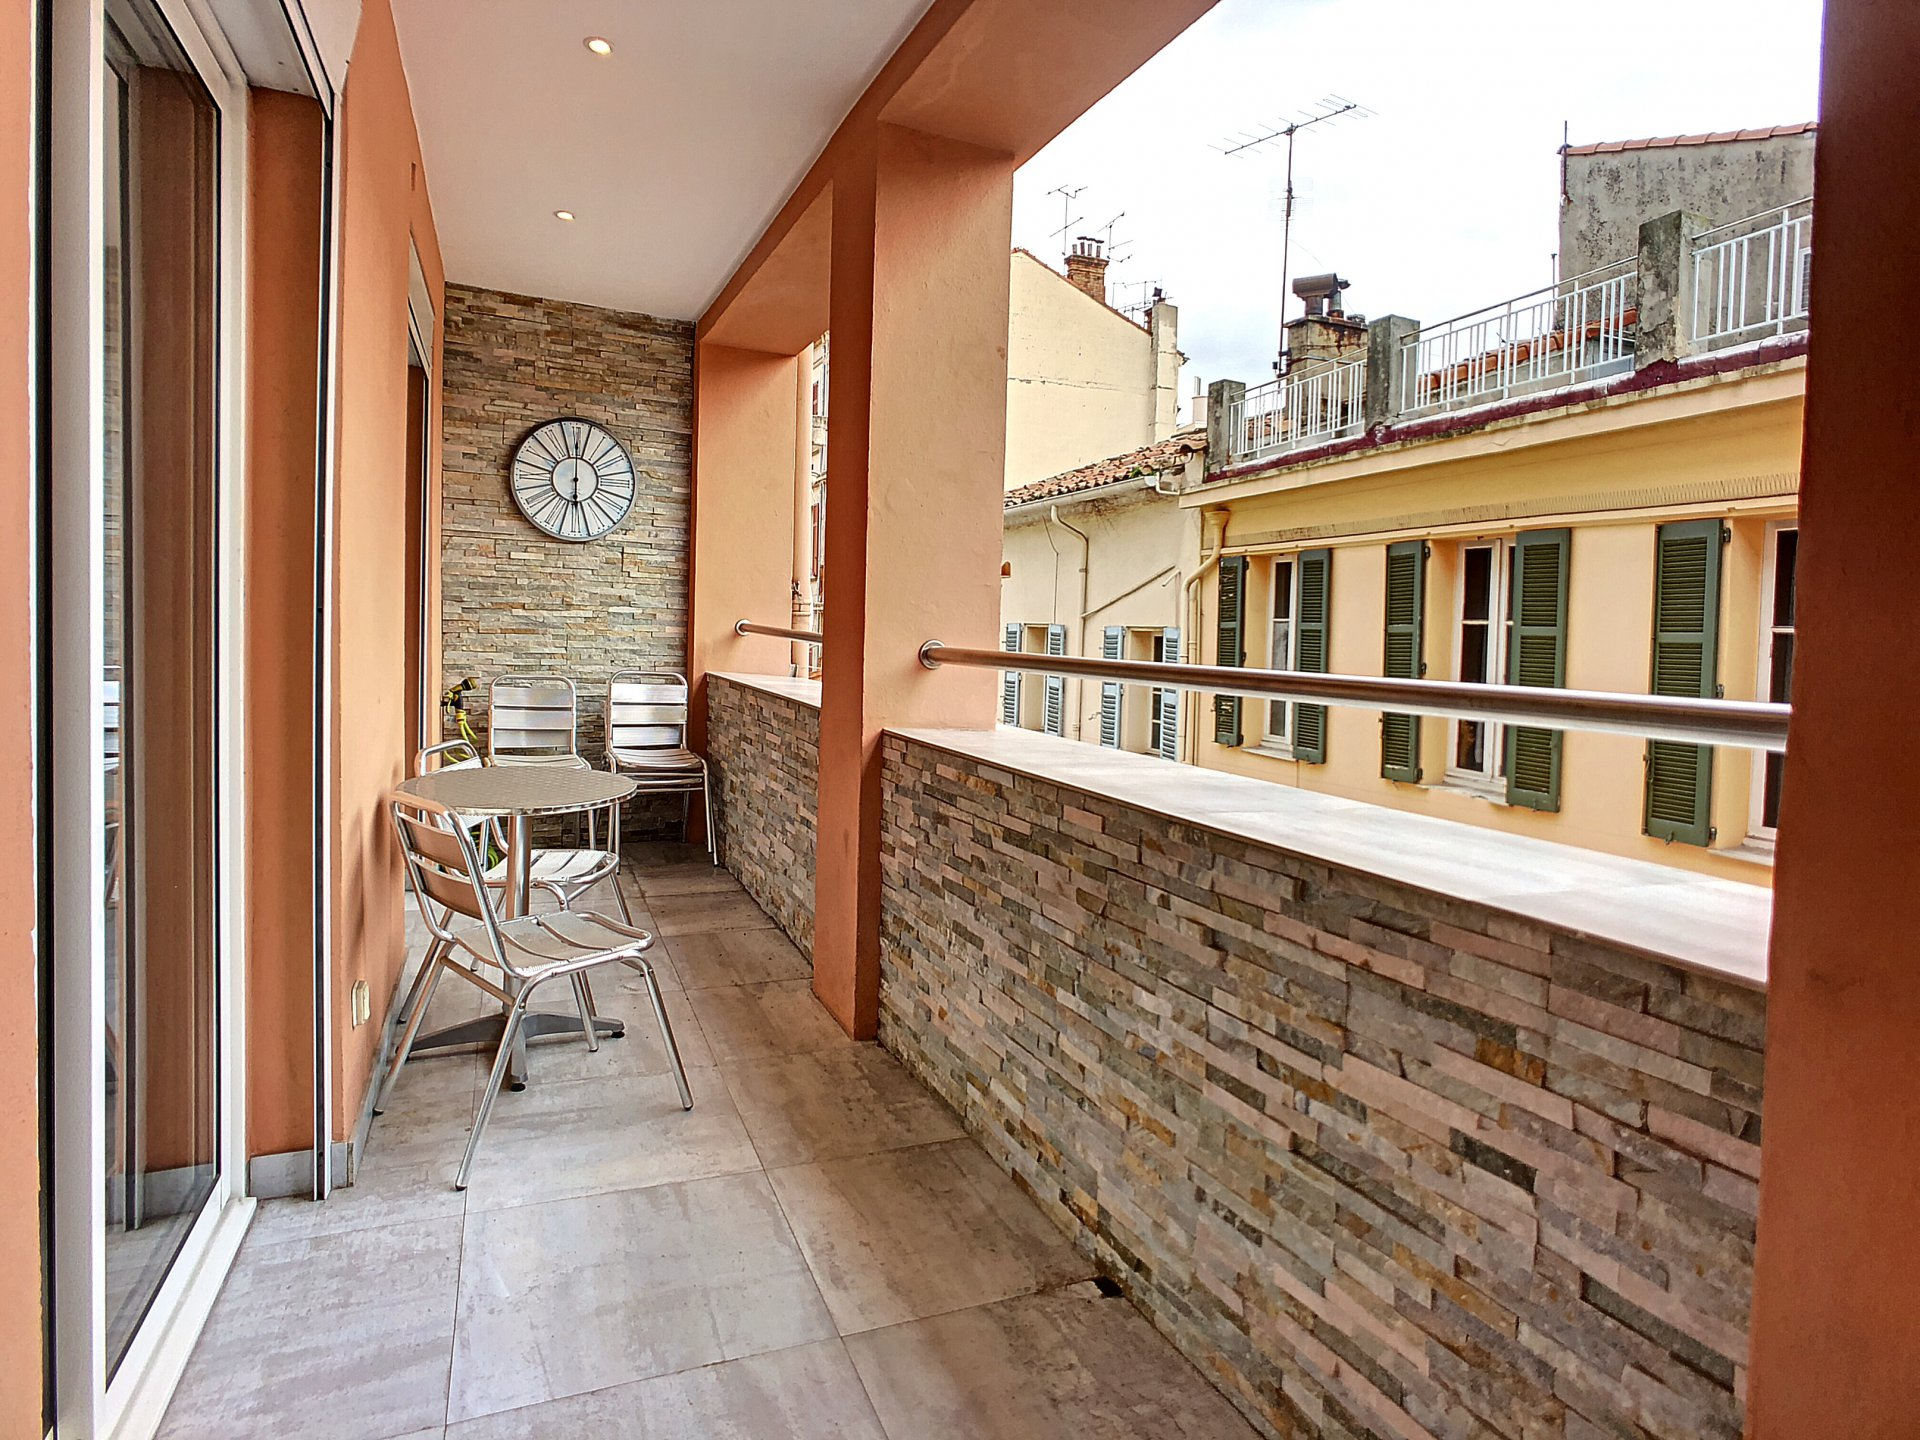 Three-bedroom apartment in Cannes, 2 minutes to Palais des festival and the Sea.